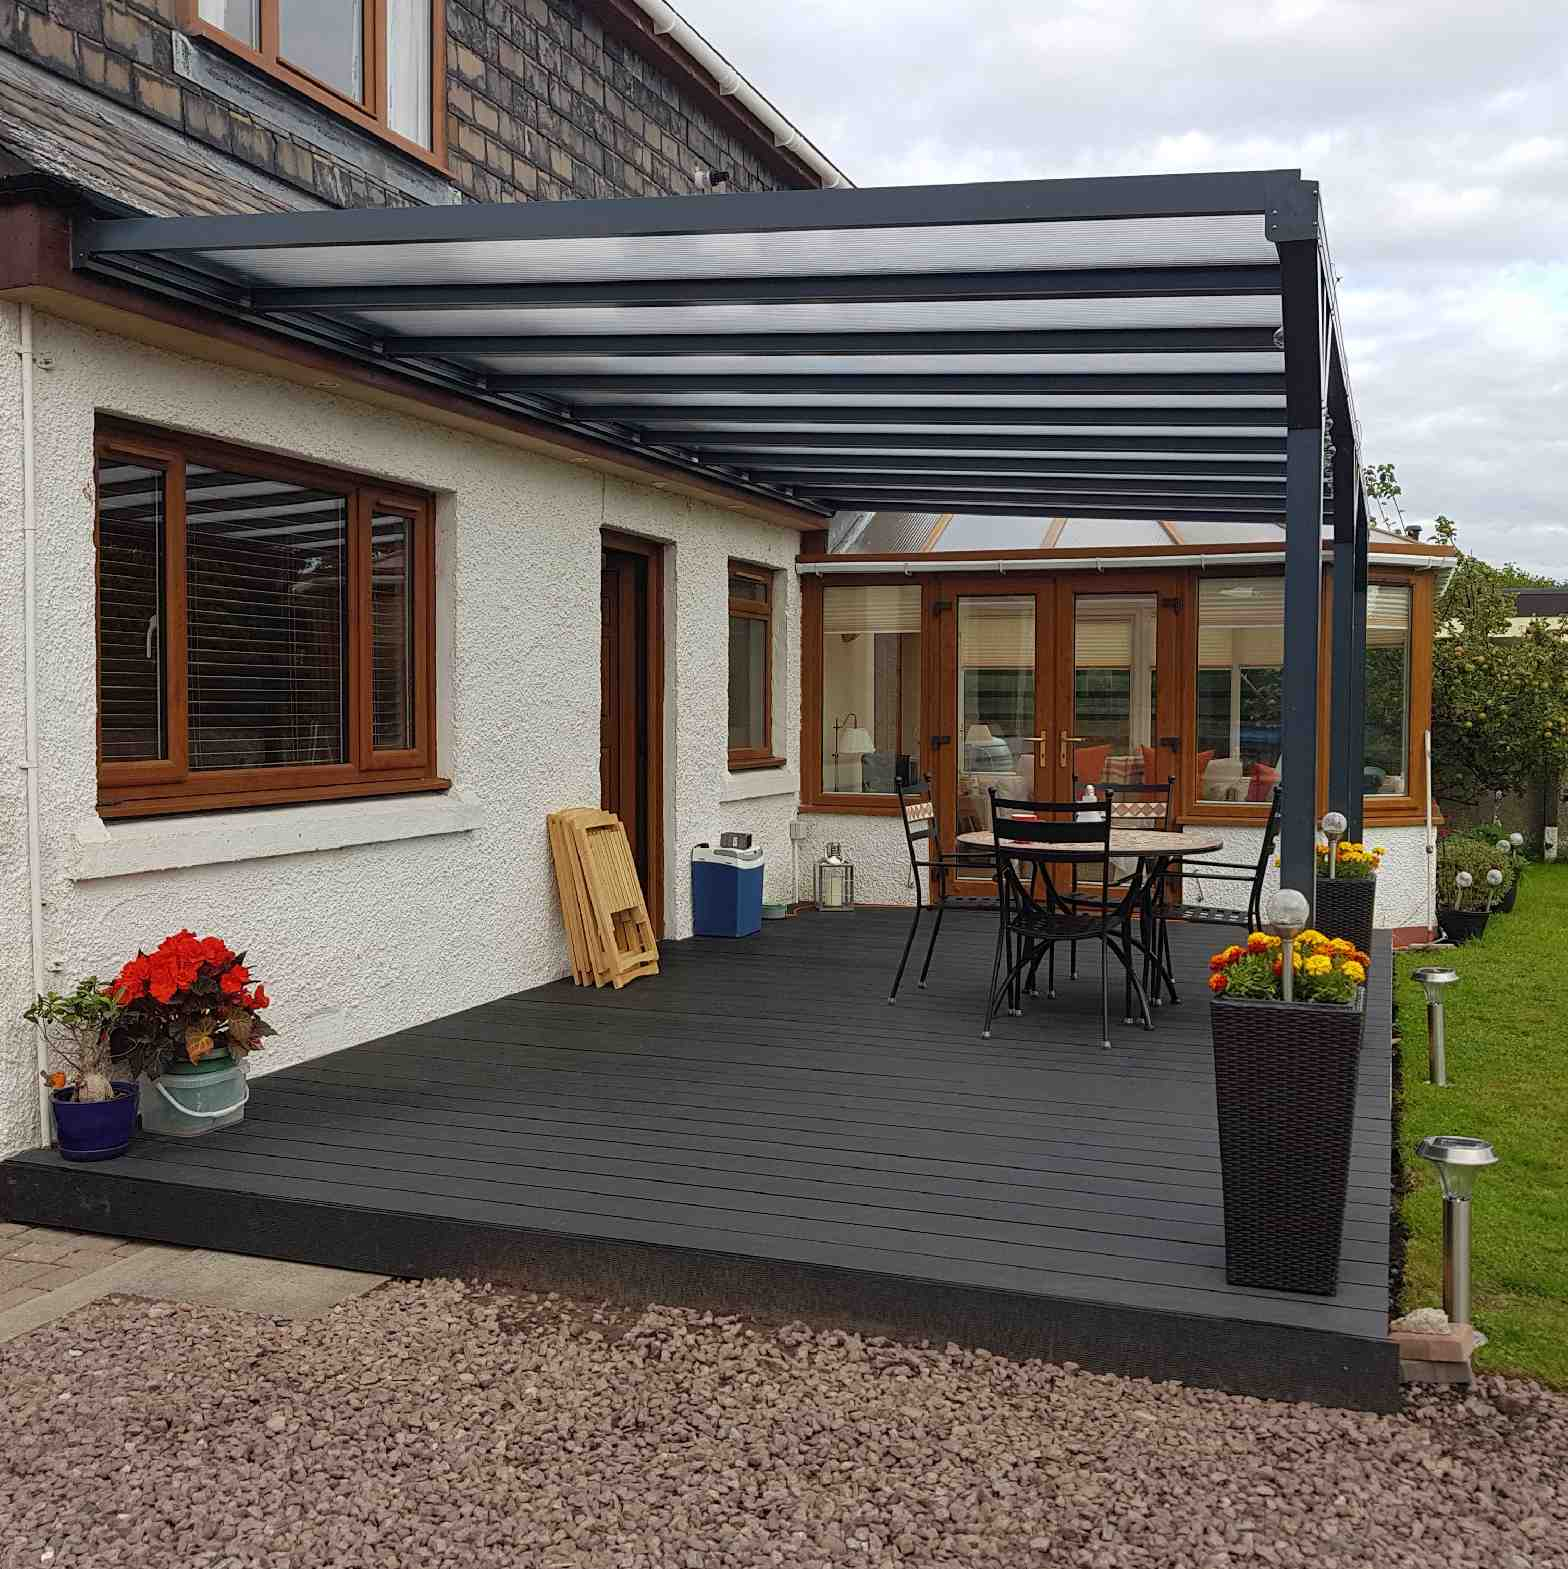 Buy Omega Verandah, Anthracite Grey, 16mm Polycarbonate Glazing - 3.1m (W) x 4.5m (P), (2) Supporting Posts online today